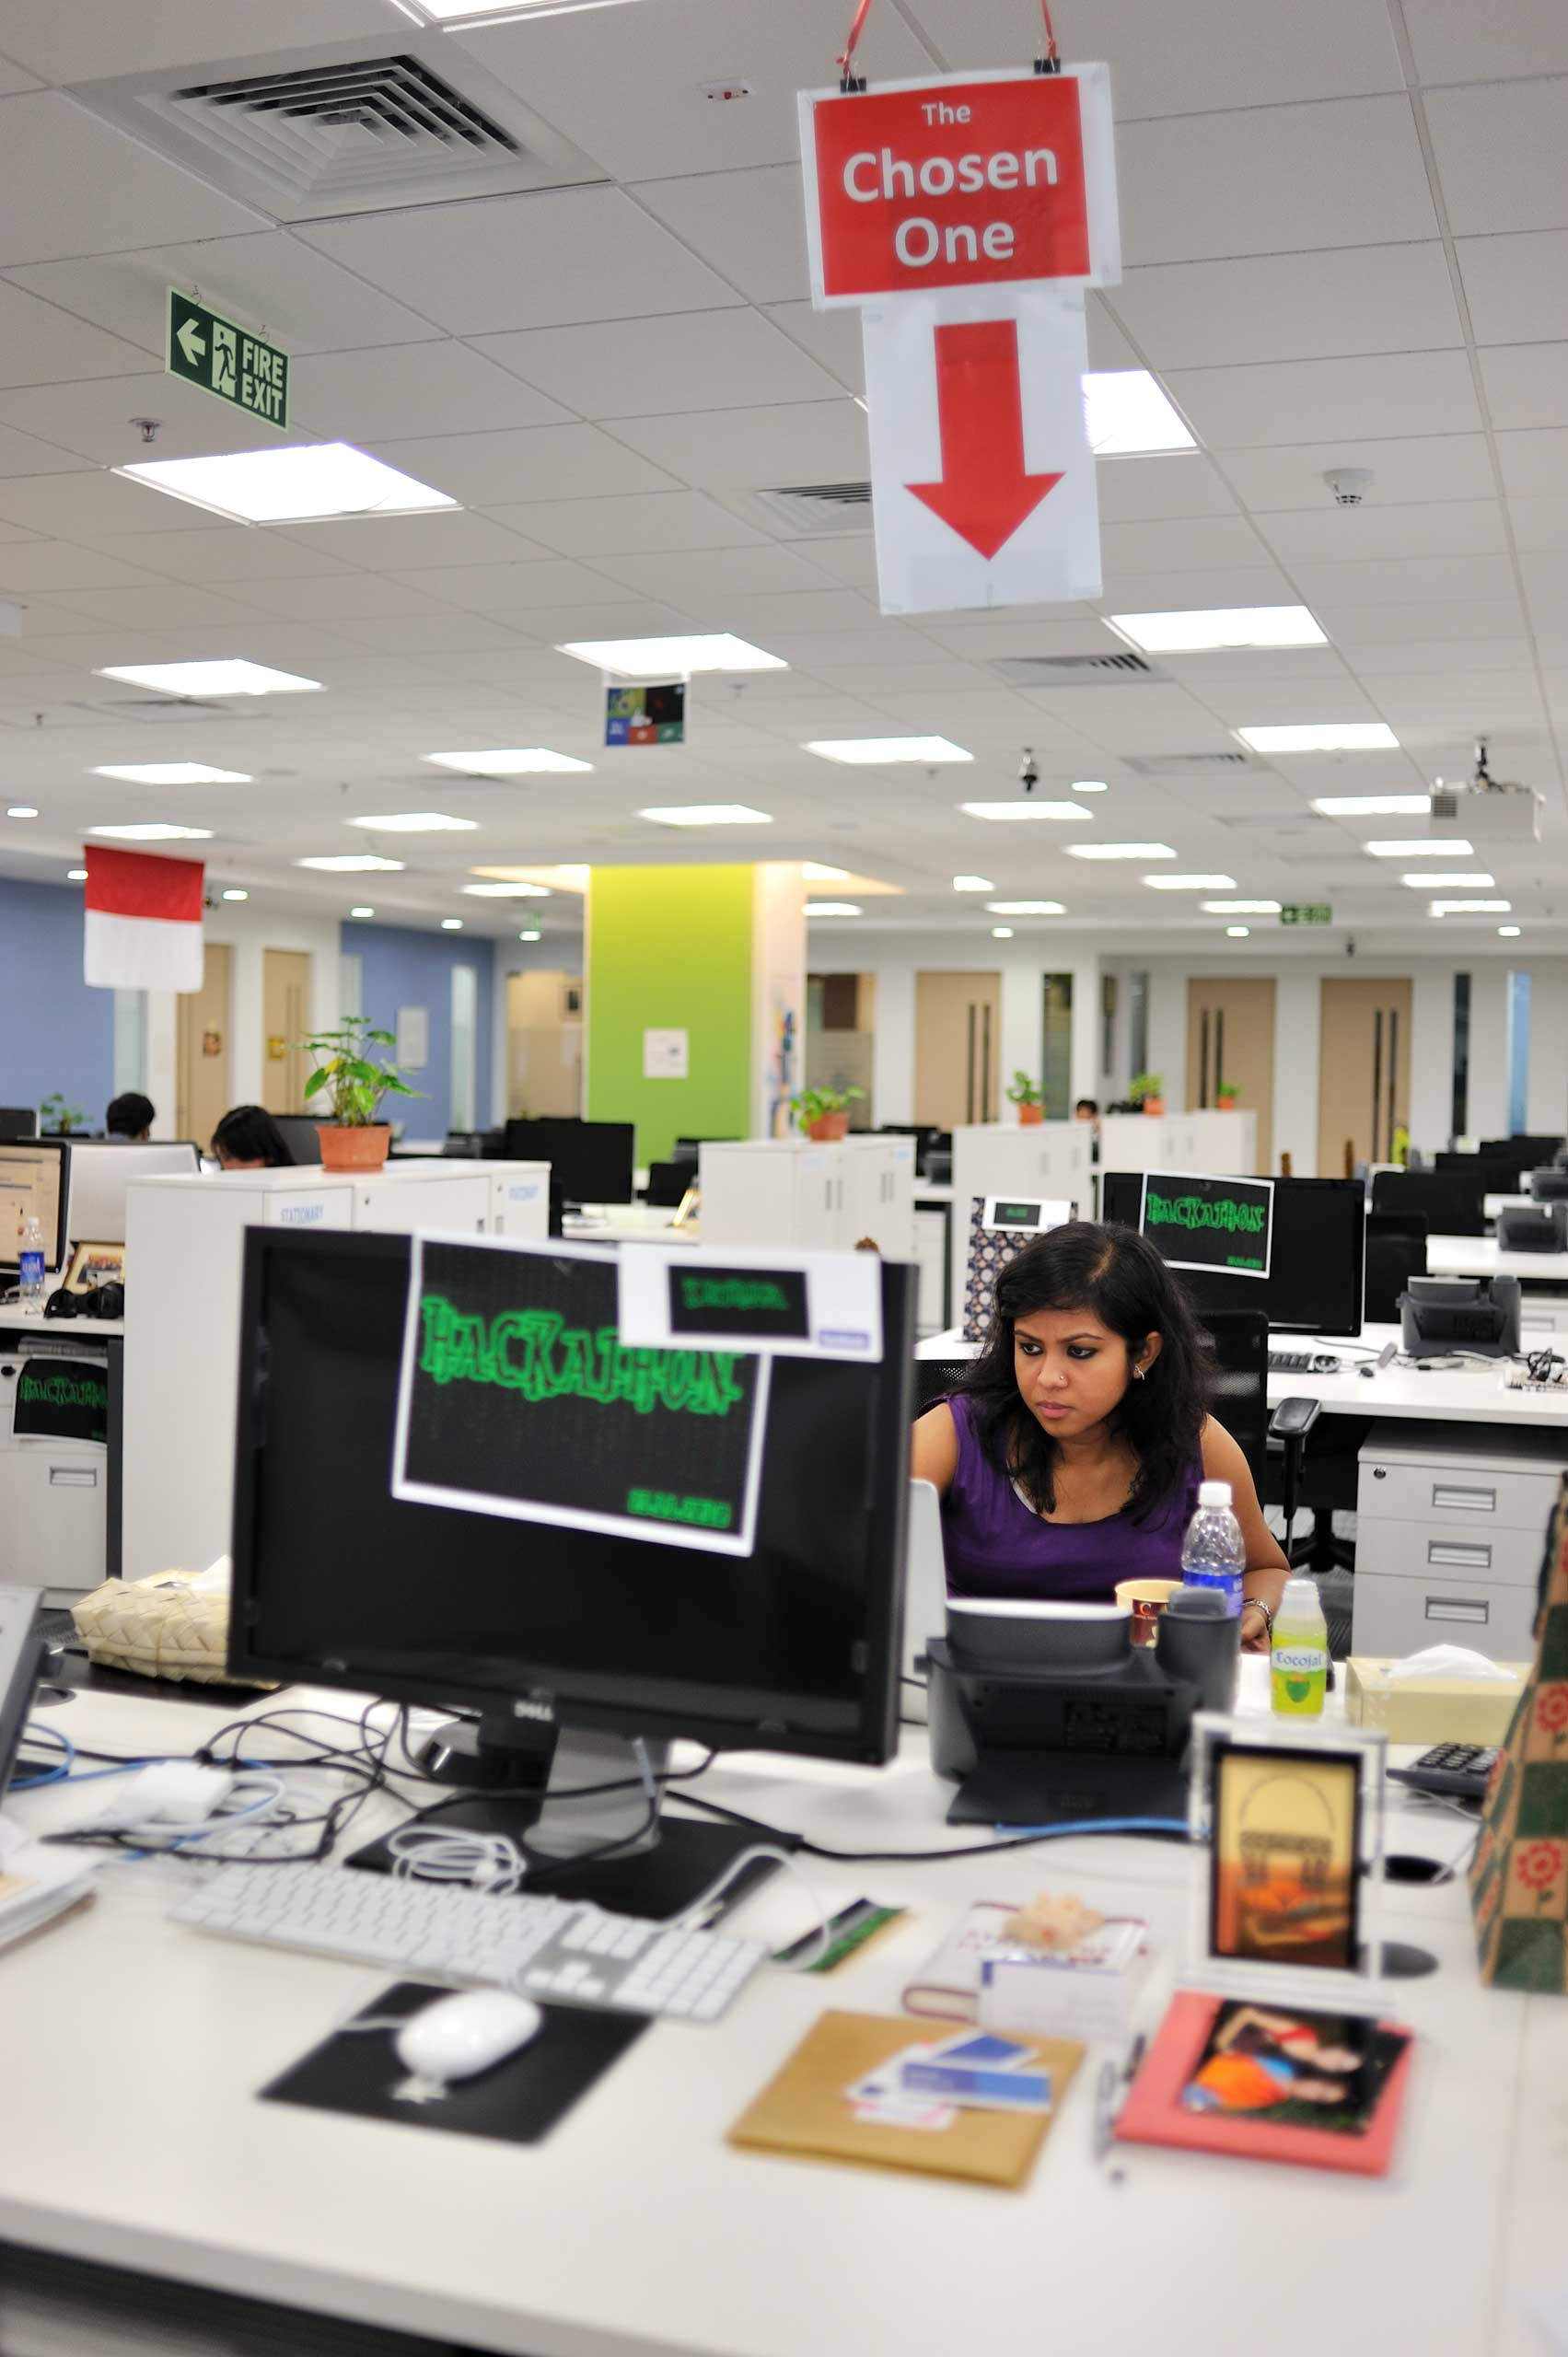 Facebook offices in Hyderabad, India in 2010.